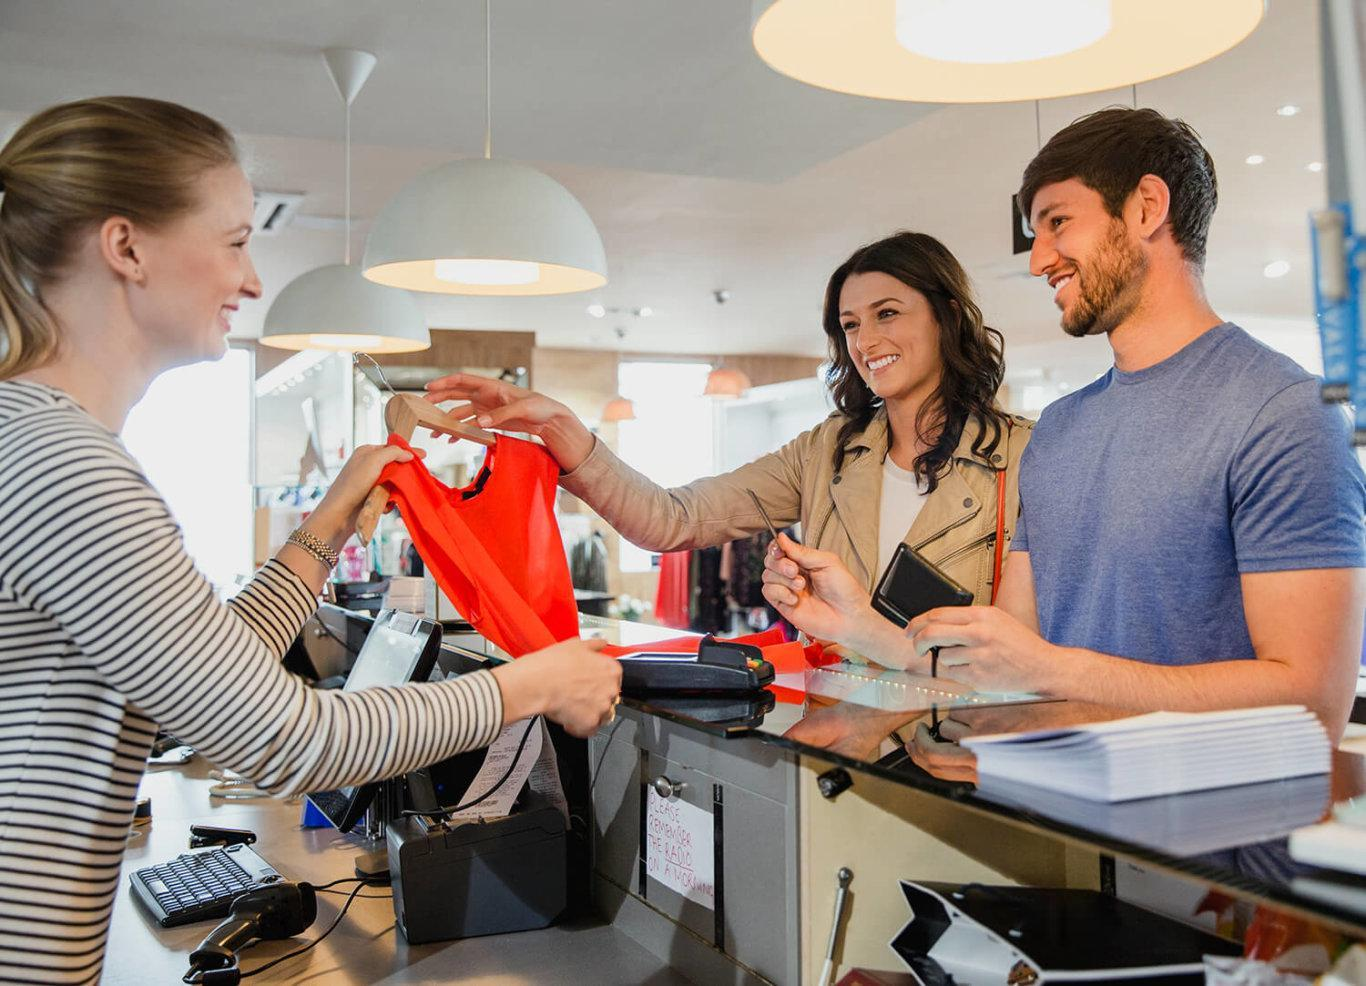 Two customers shopping and laughing at a clothing store expressing joy from their experience